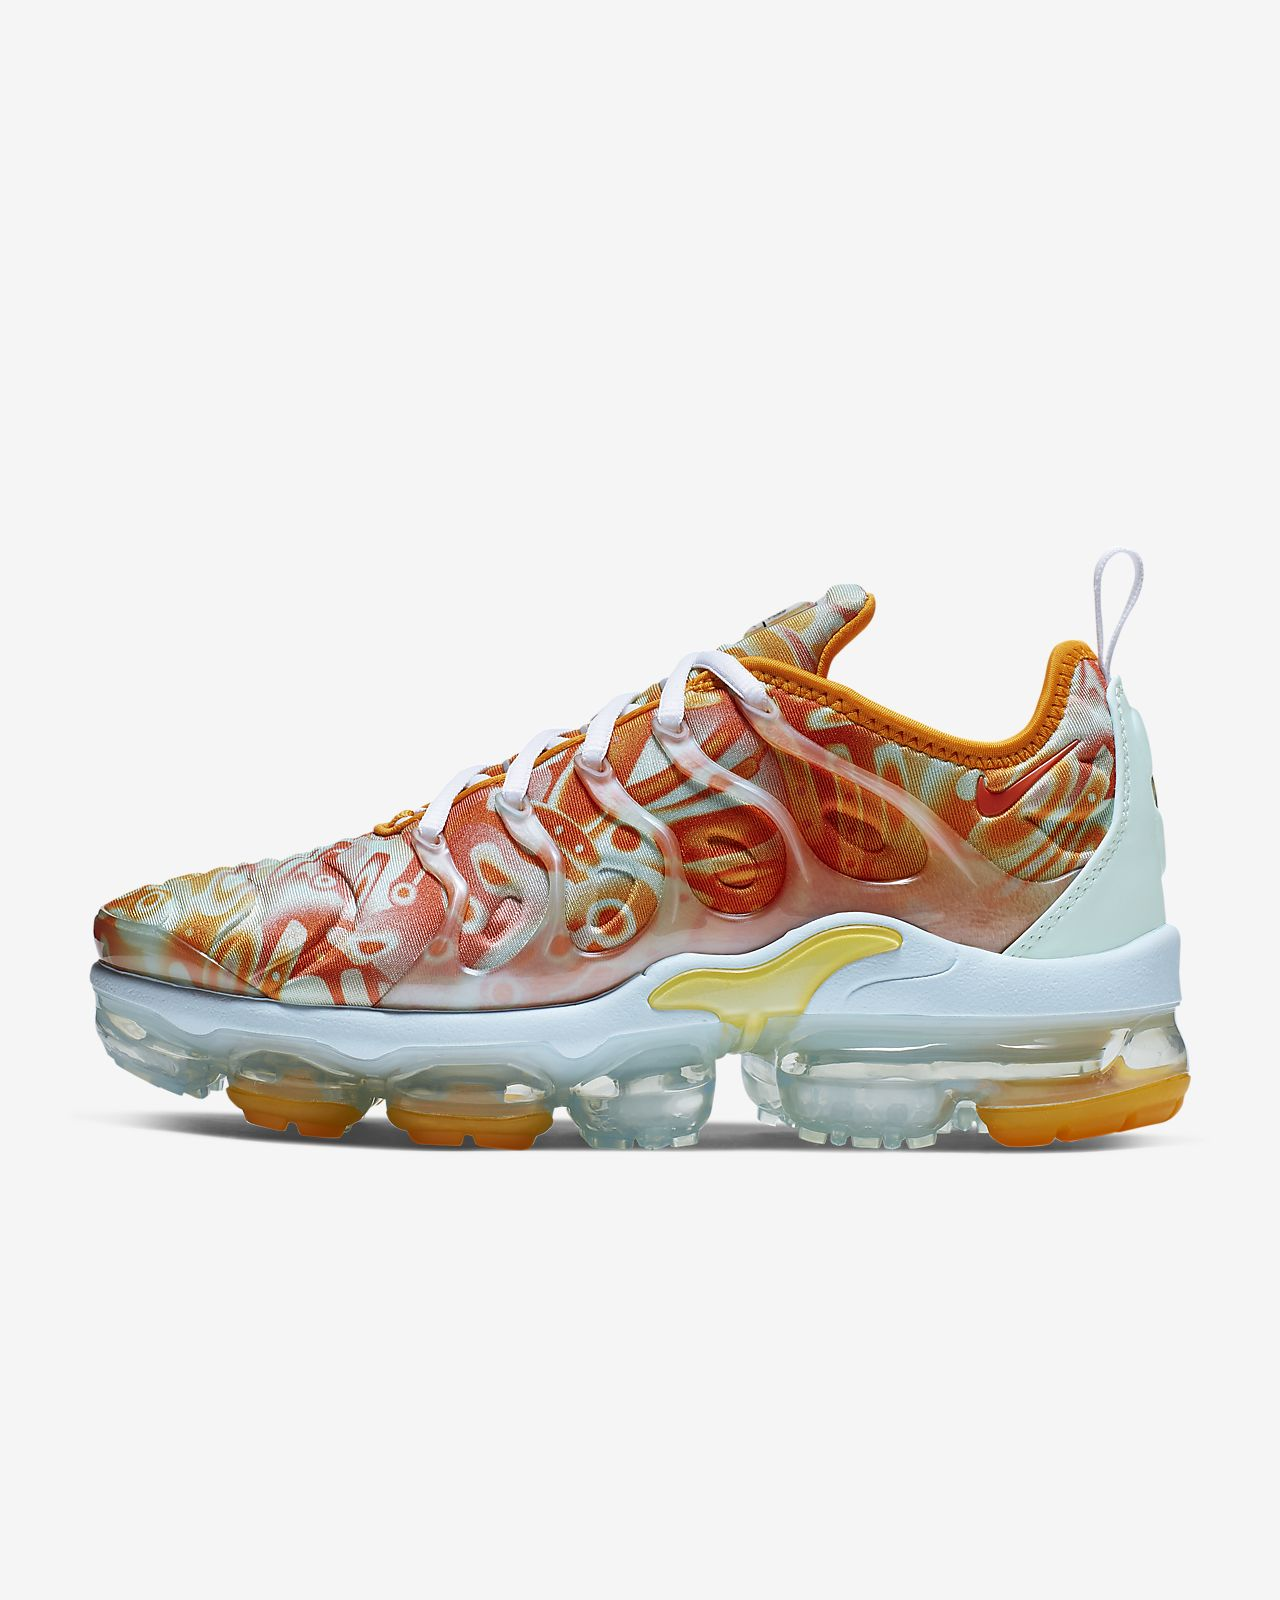 Nike Air VaporMax Plus QS Women's Shoe